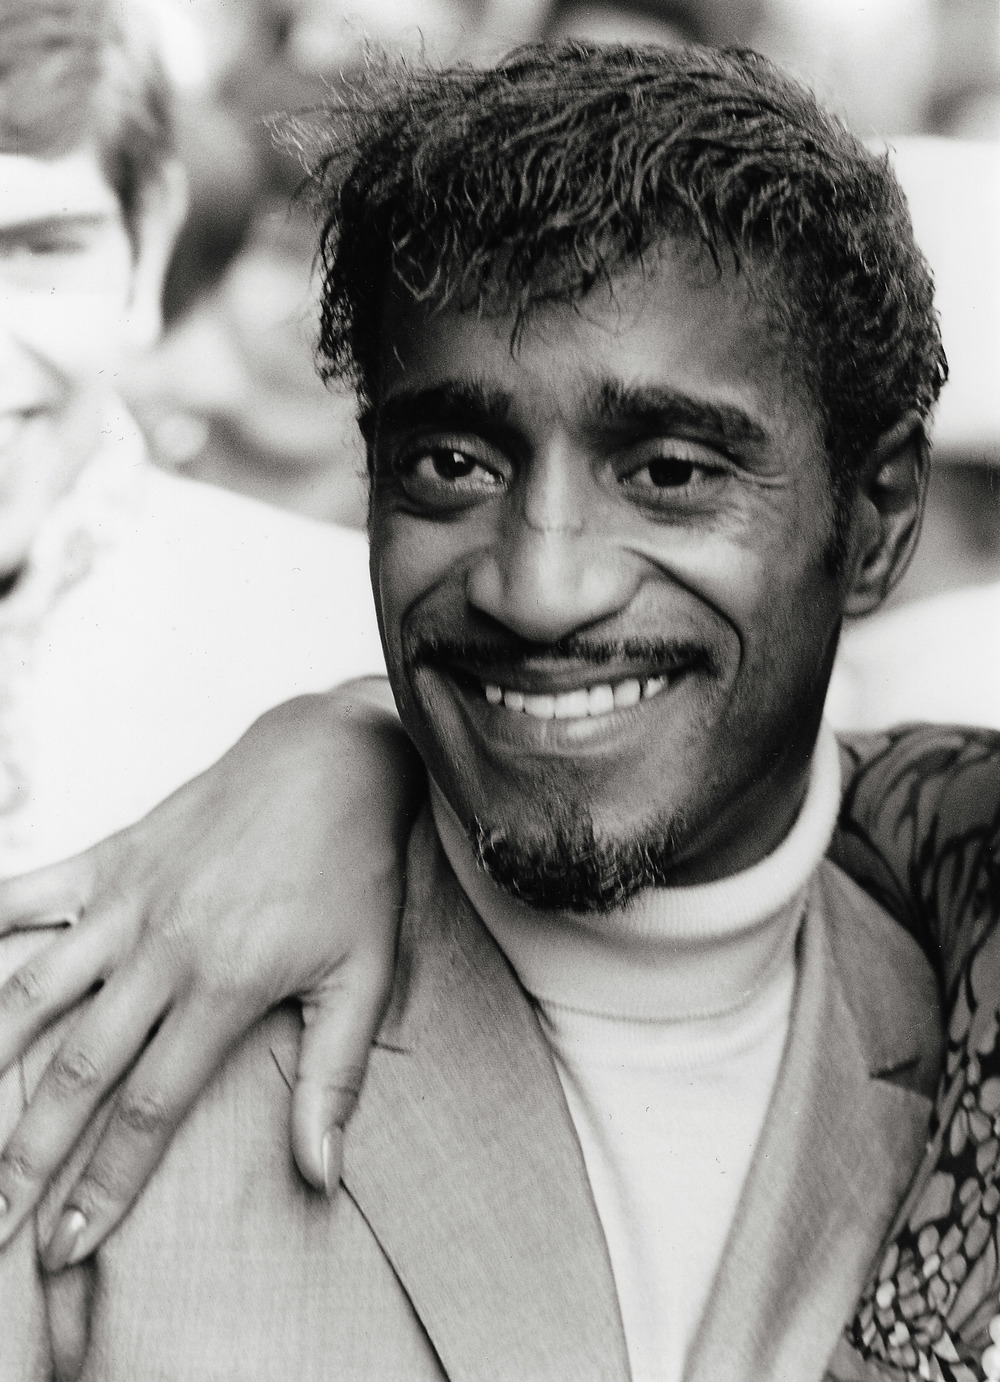 Sammy Davis Jr, Kings Road, London 1968  Photo by Frank Habicht